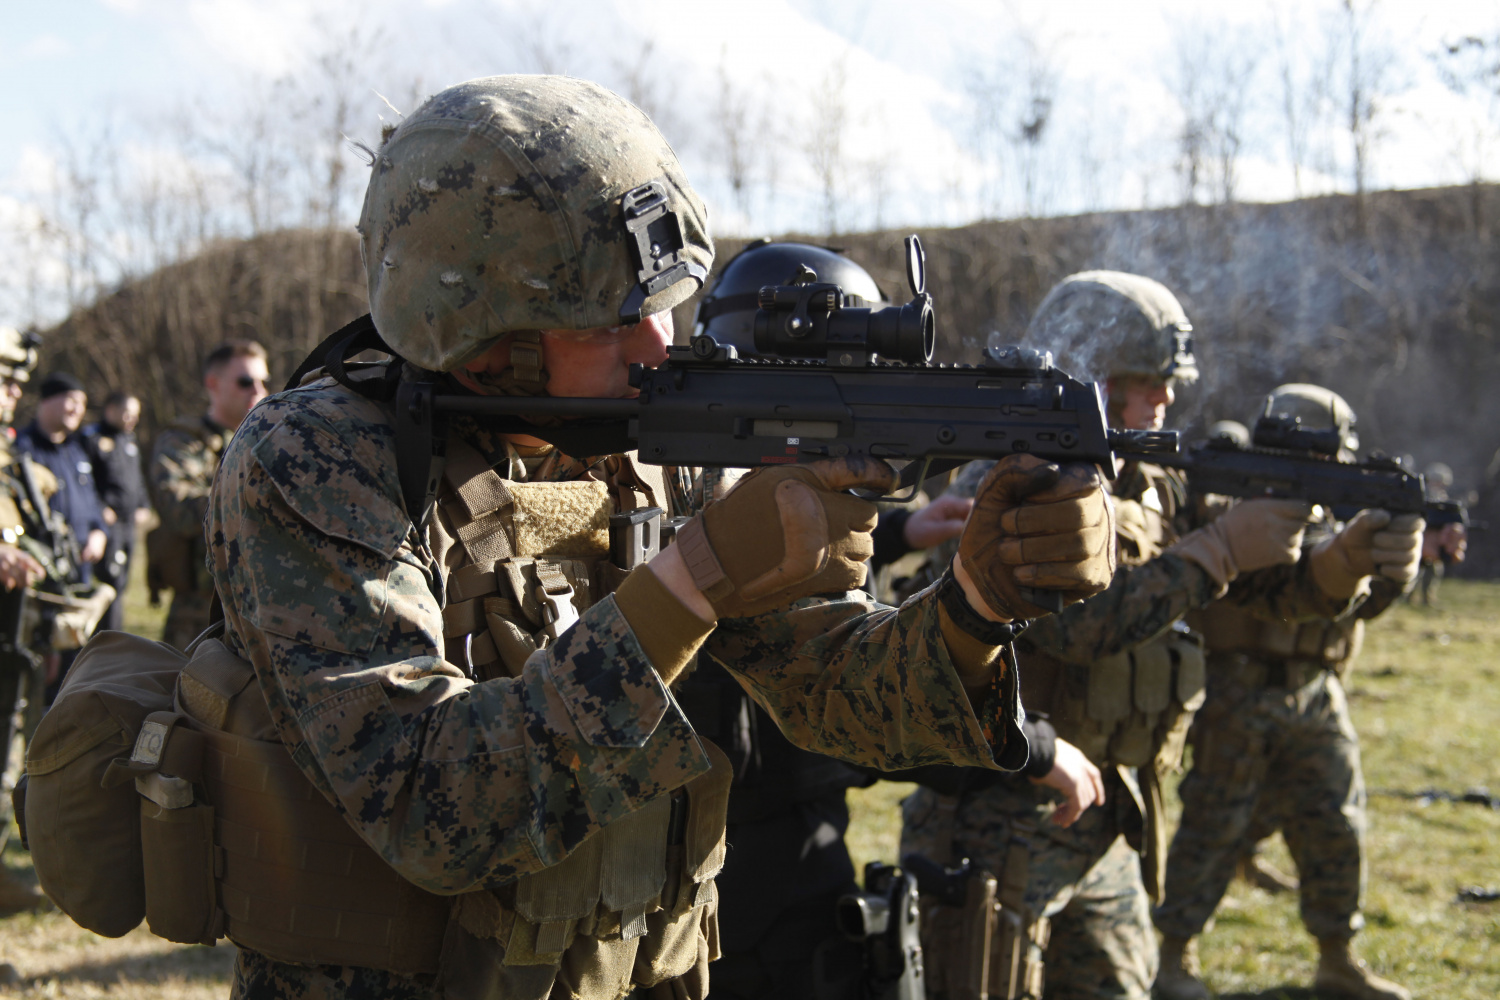 US Marines train with the Heckler & Koch MP7 in Romania. U.S. Marine Corps photo by Sgt. Esdras Ruano.